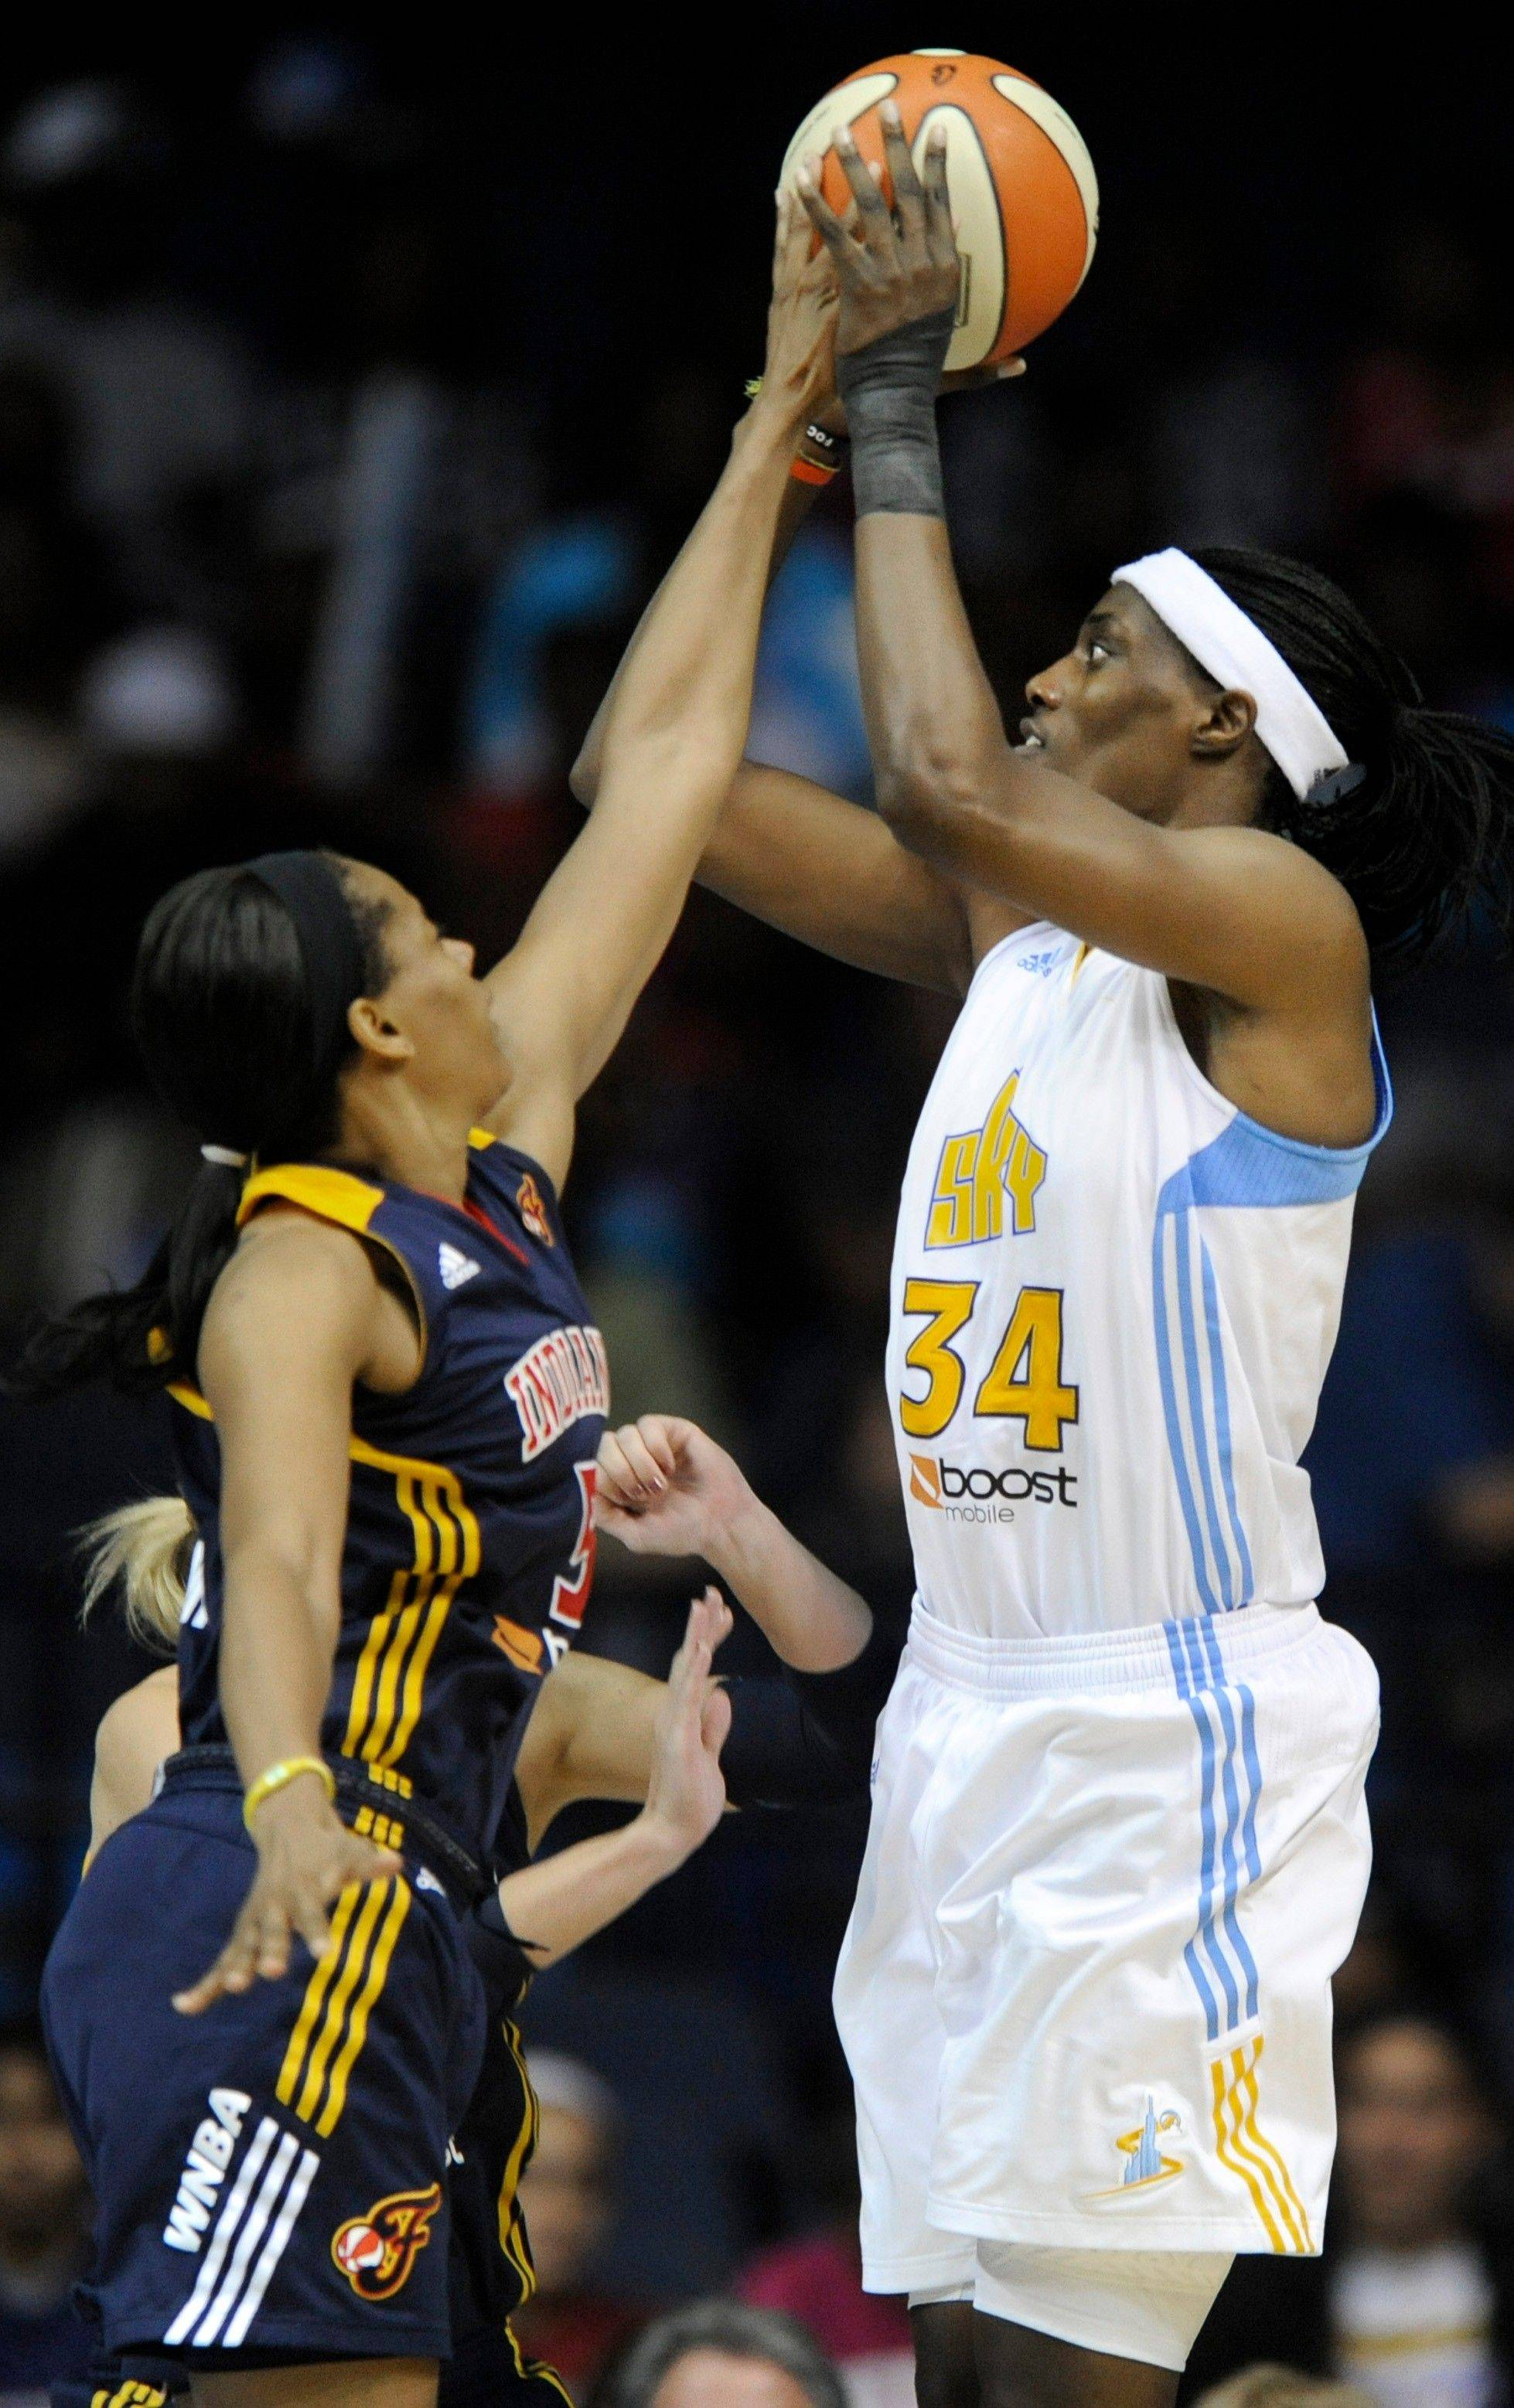 The Chicago Sky�s Sylvia Fowles leads the WNBA in field-goal percentage (59.6) and is third in scoring (19.8), but it�s doubtful she will win the league�s MVP award.